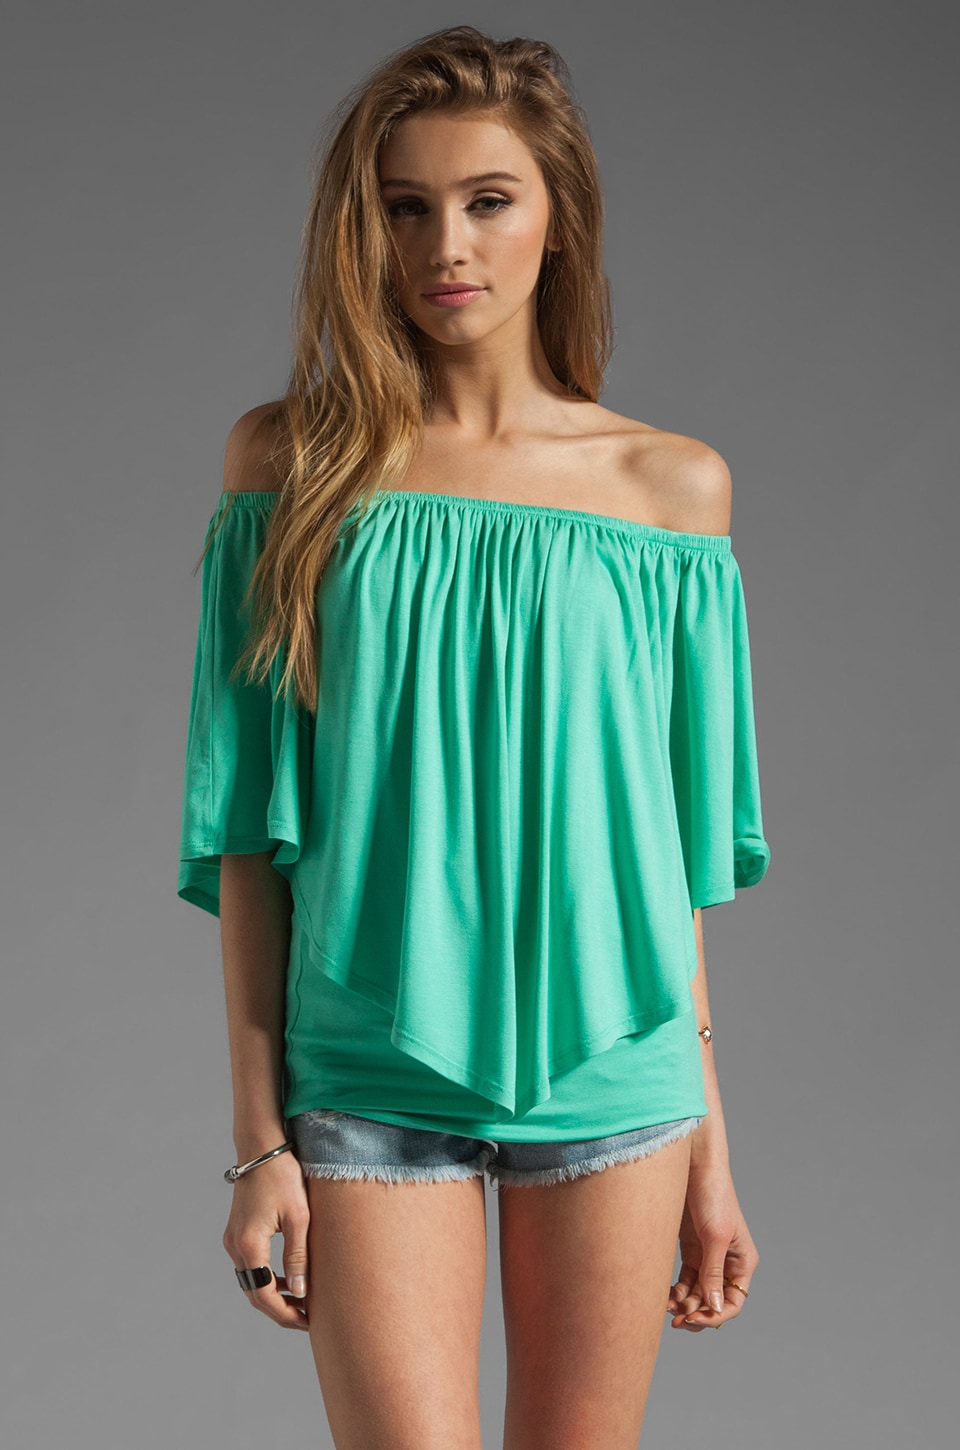 James & Joy Mina Convertible Top in Seafoam